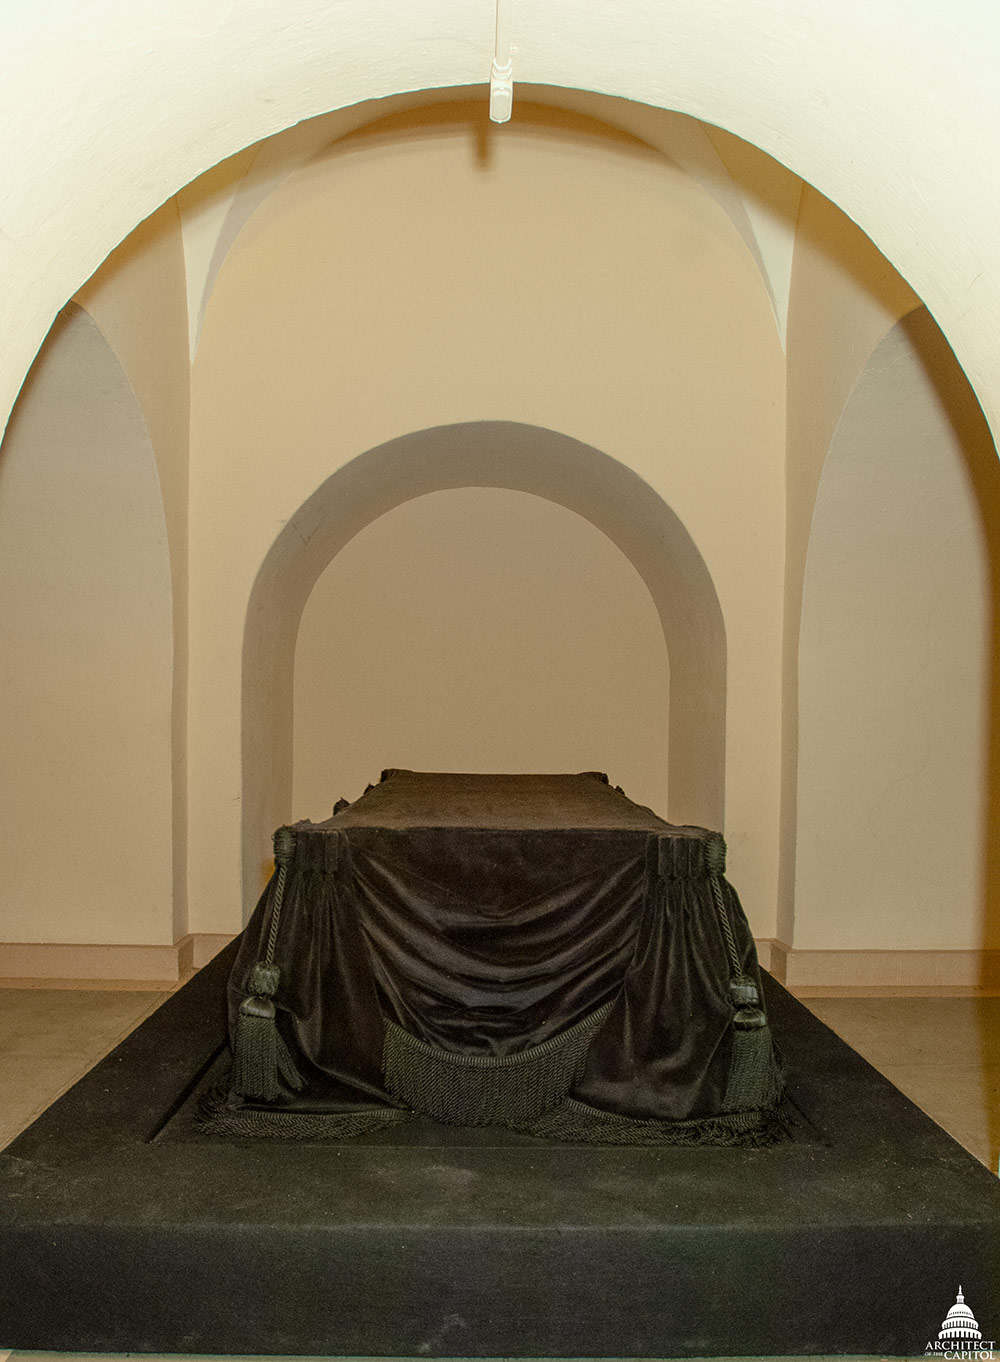 The Lincoln catafalque, constructed by Job W. Angus and others to support the casket of Abraham Lincoln while the president's body lay in state in the U.S. Capitol Rotunda.